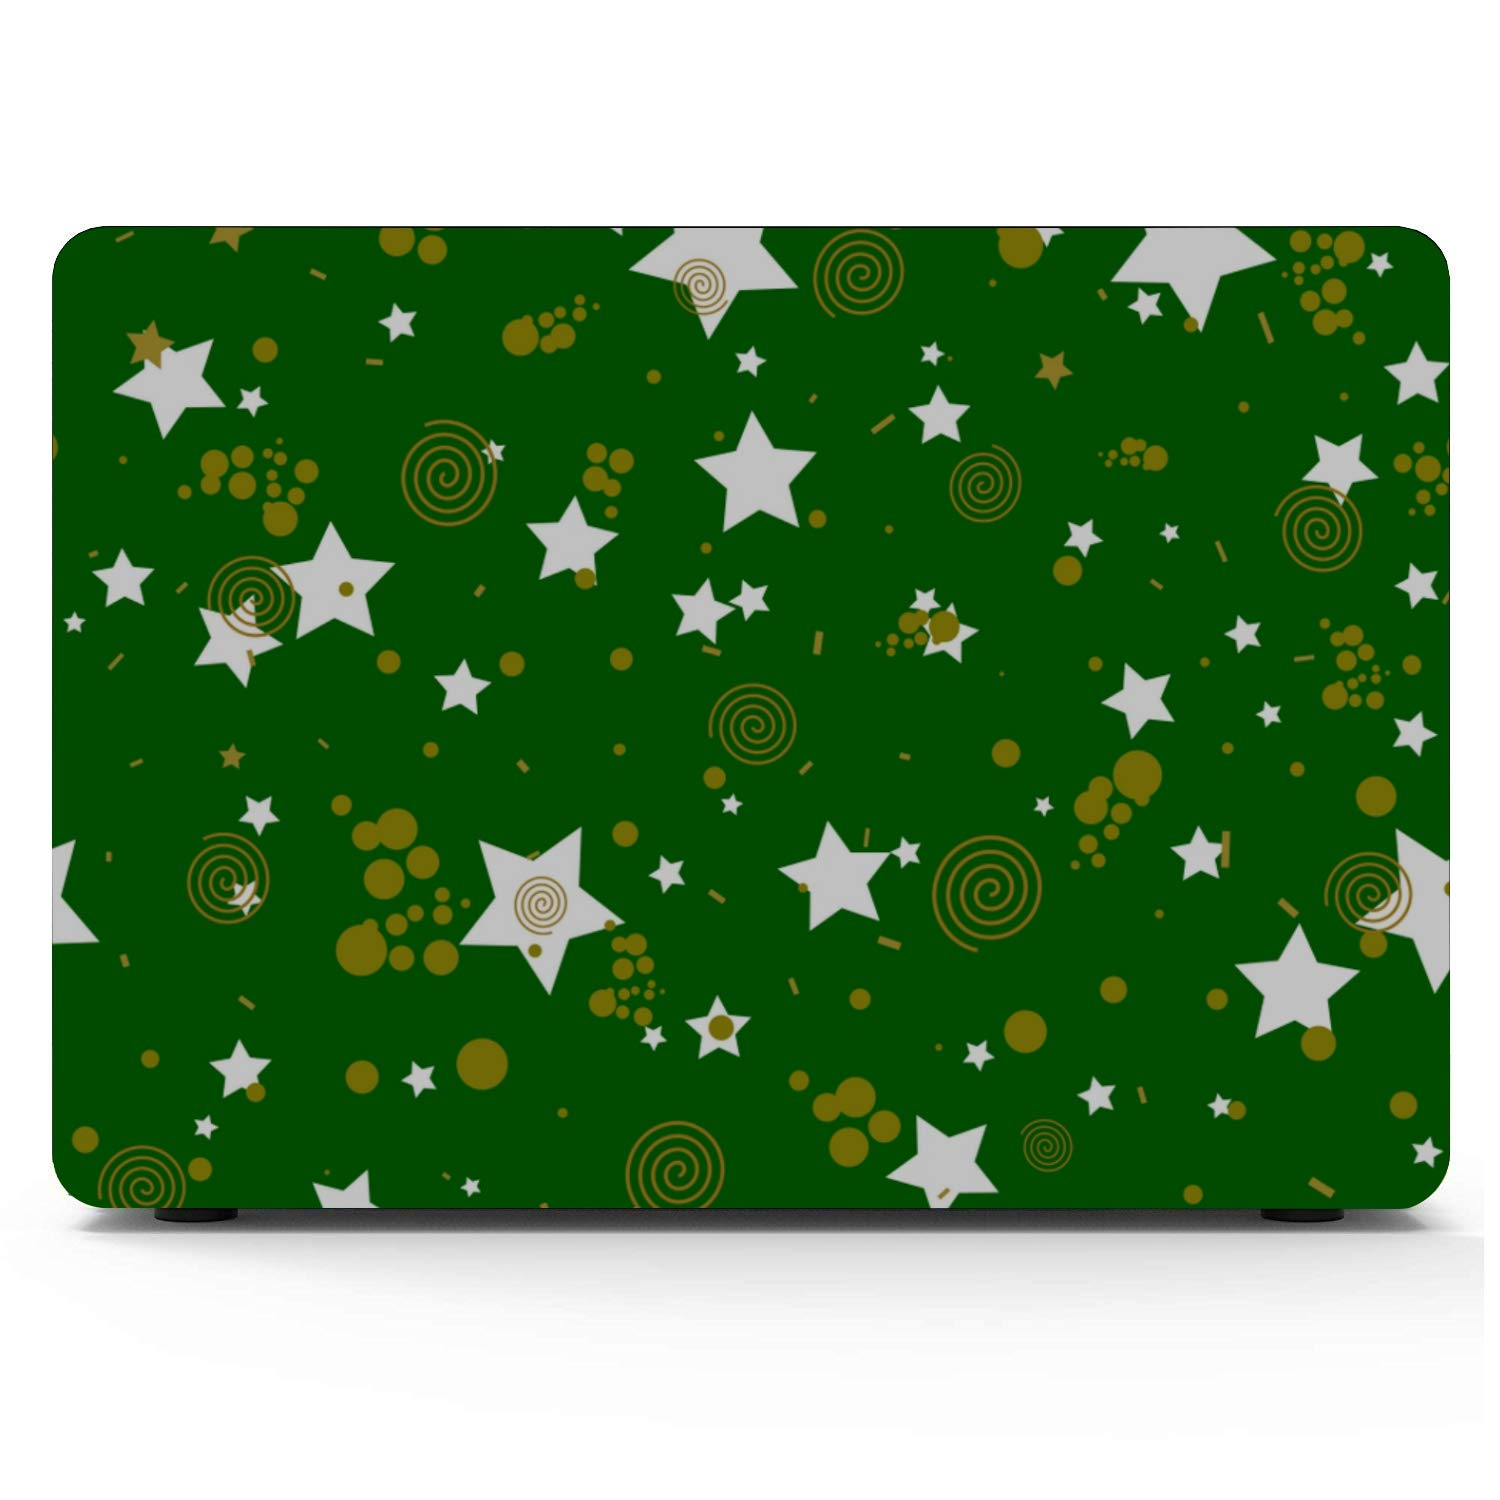 MacBook Assessories Shiny Retro Noble Pentagram Sky Plastic Hard Shell Compatible Mac Air 11 Pro 13 15 MacBook Air 1466 Case Protection for MacBook 2016-2019 Version